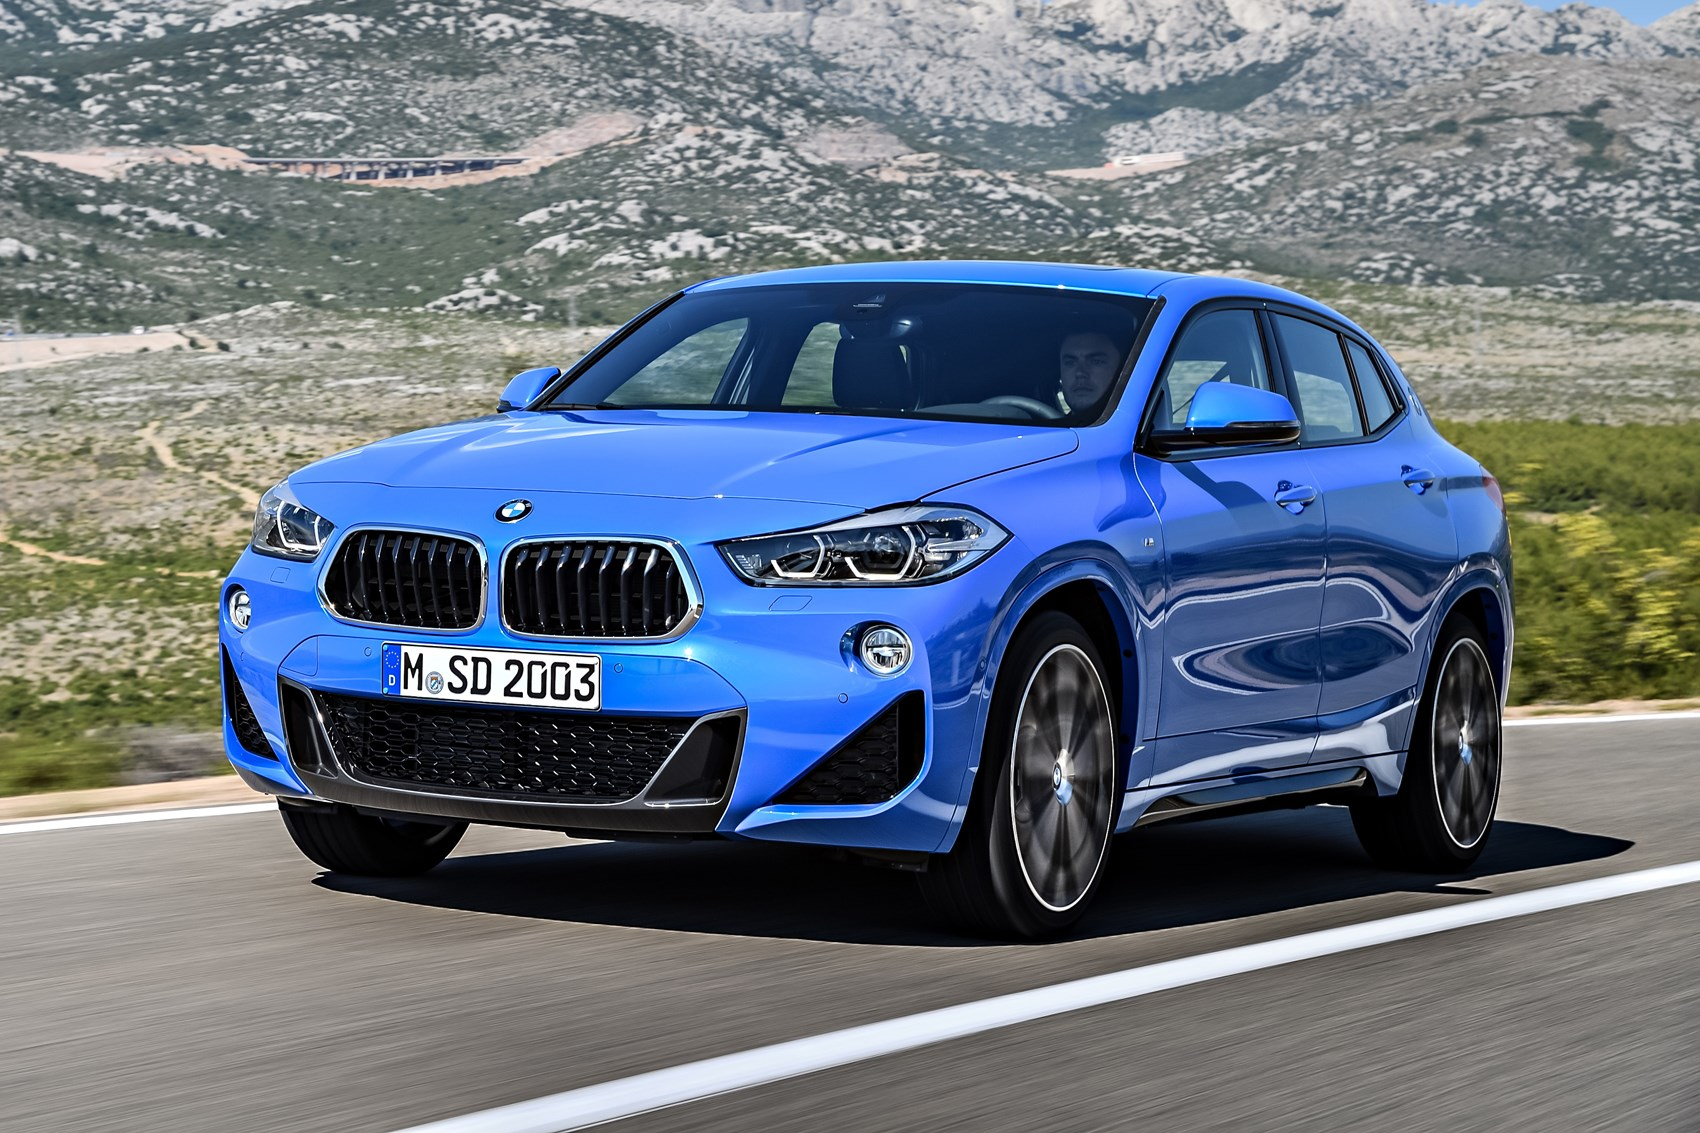 Bmw X2 Interior >> BMW X2 review: summary | Parkers